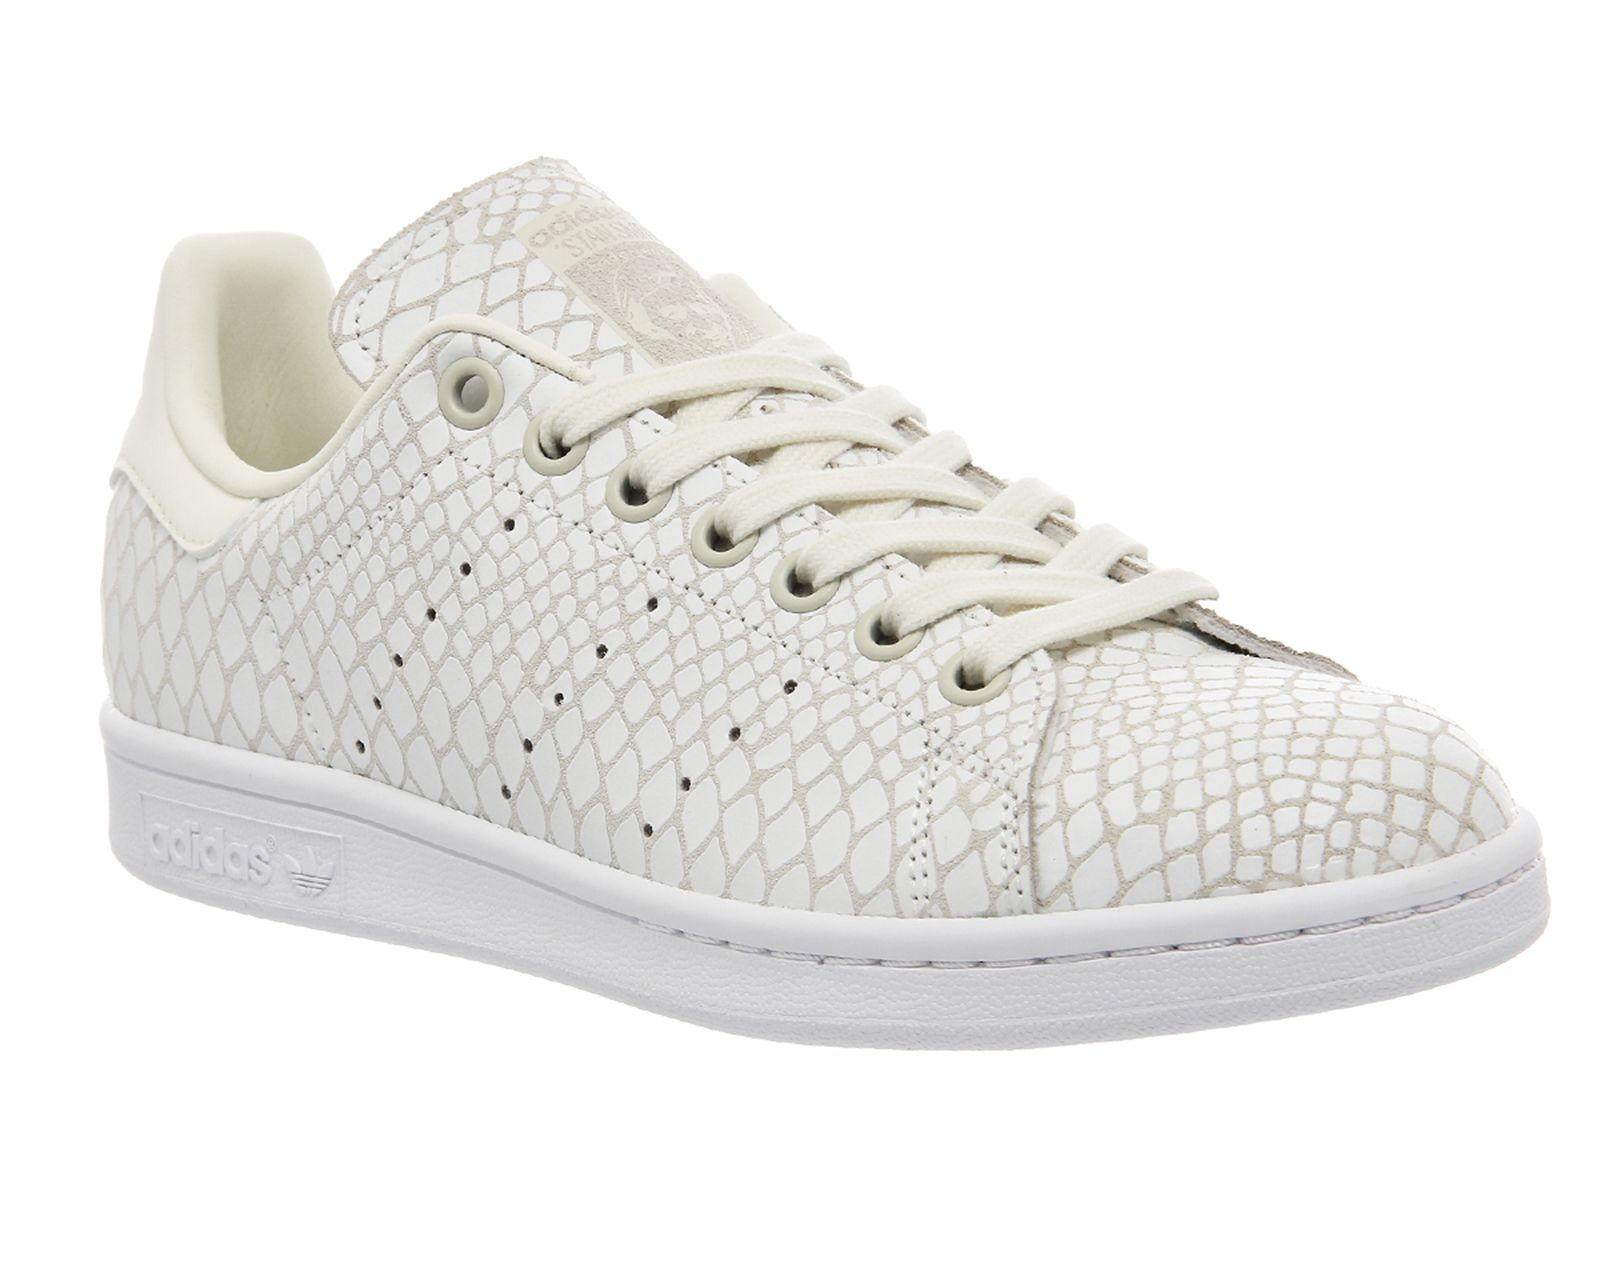 watch 96eae 261f3 Buy Off White Reptile W Adidas Stan Smith from OFFICE.co.uk ...